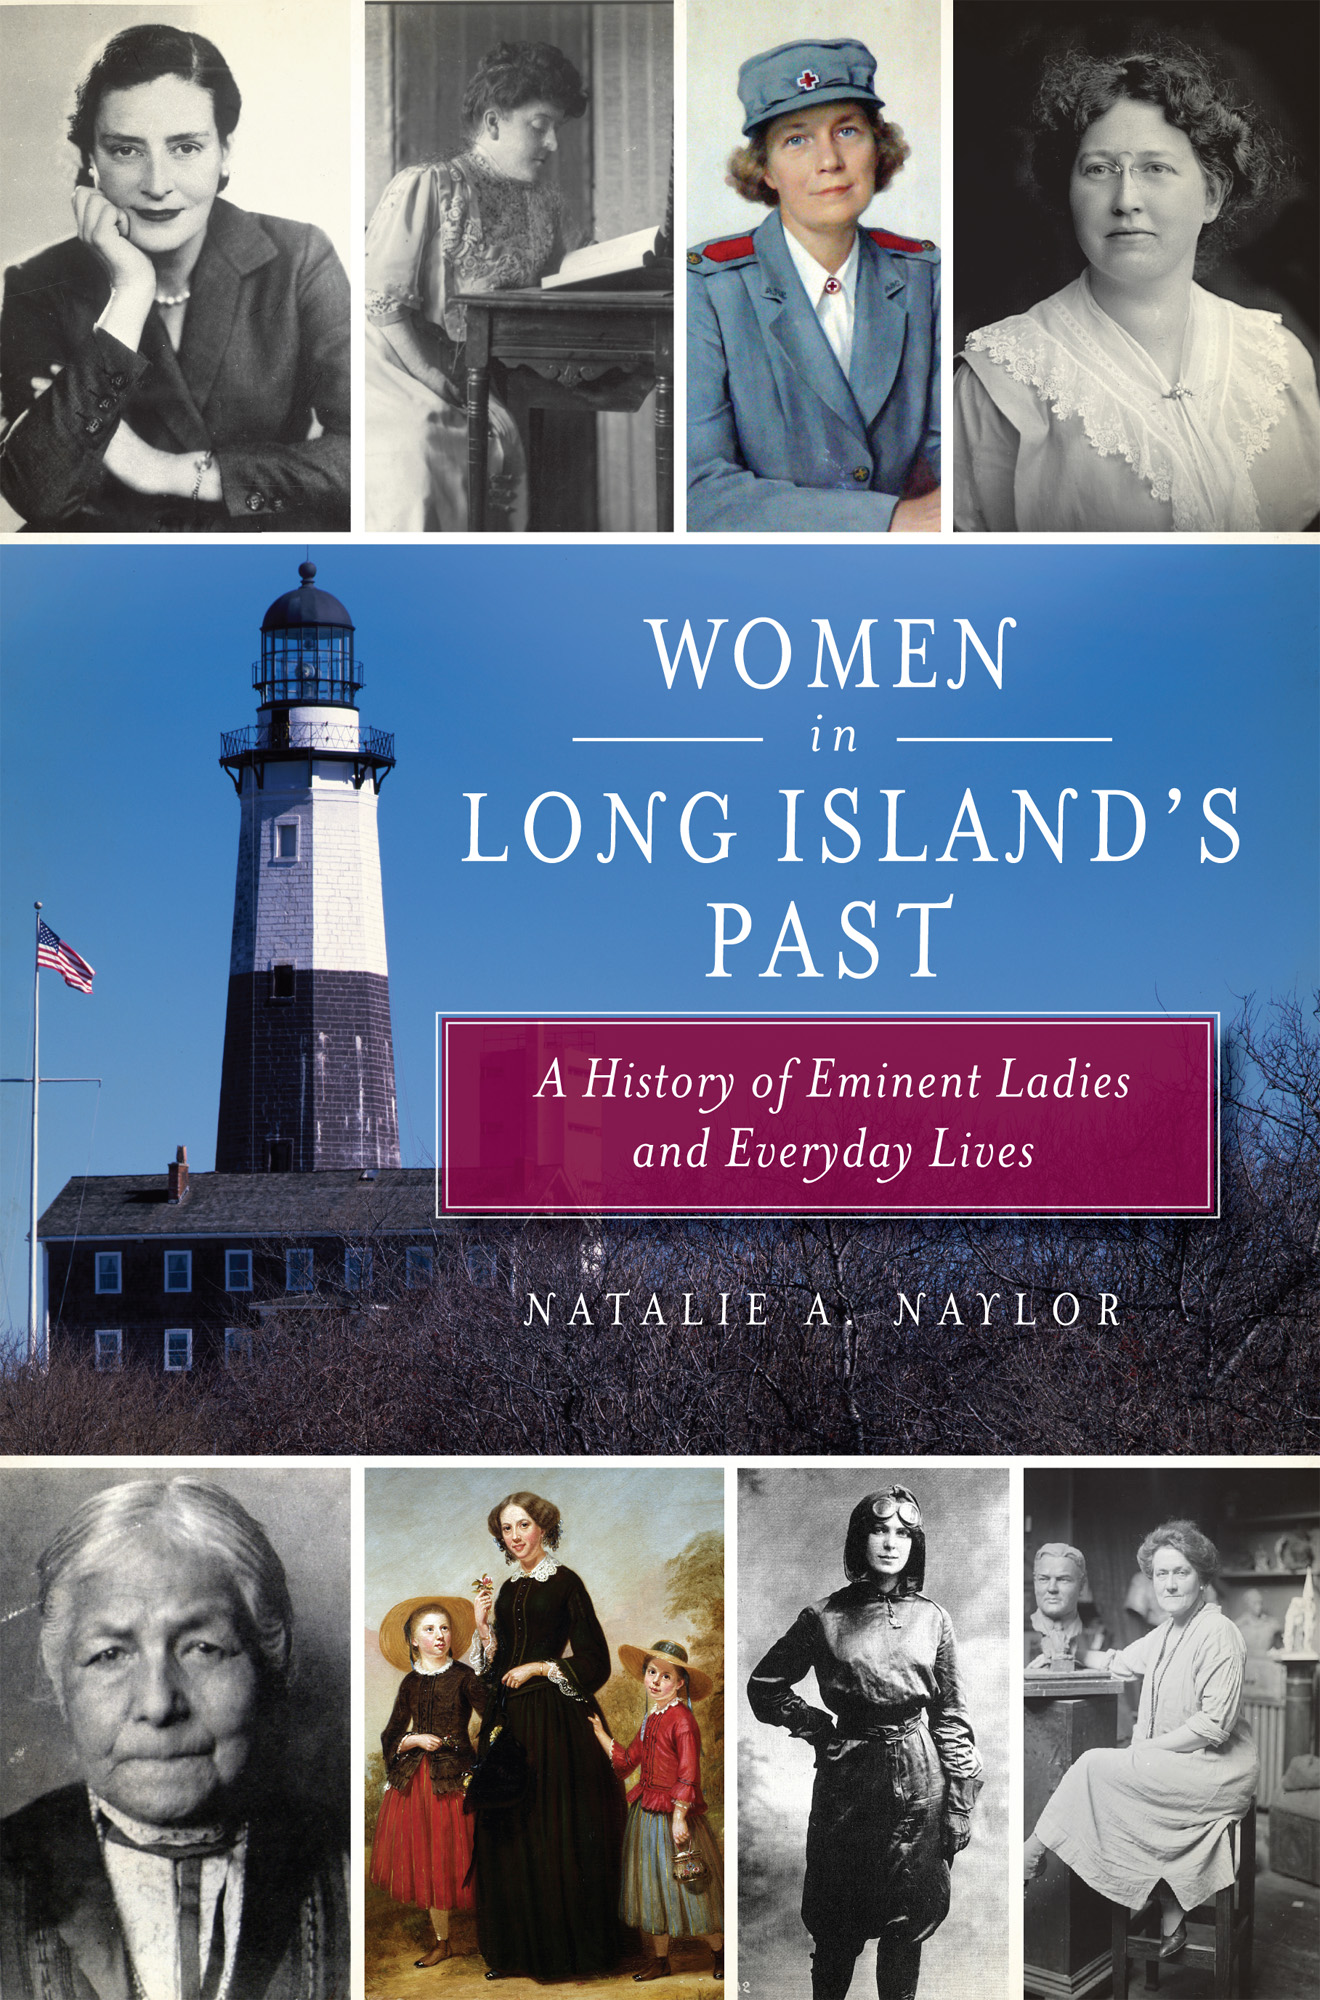 Women in Long Island's Past review, May